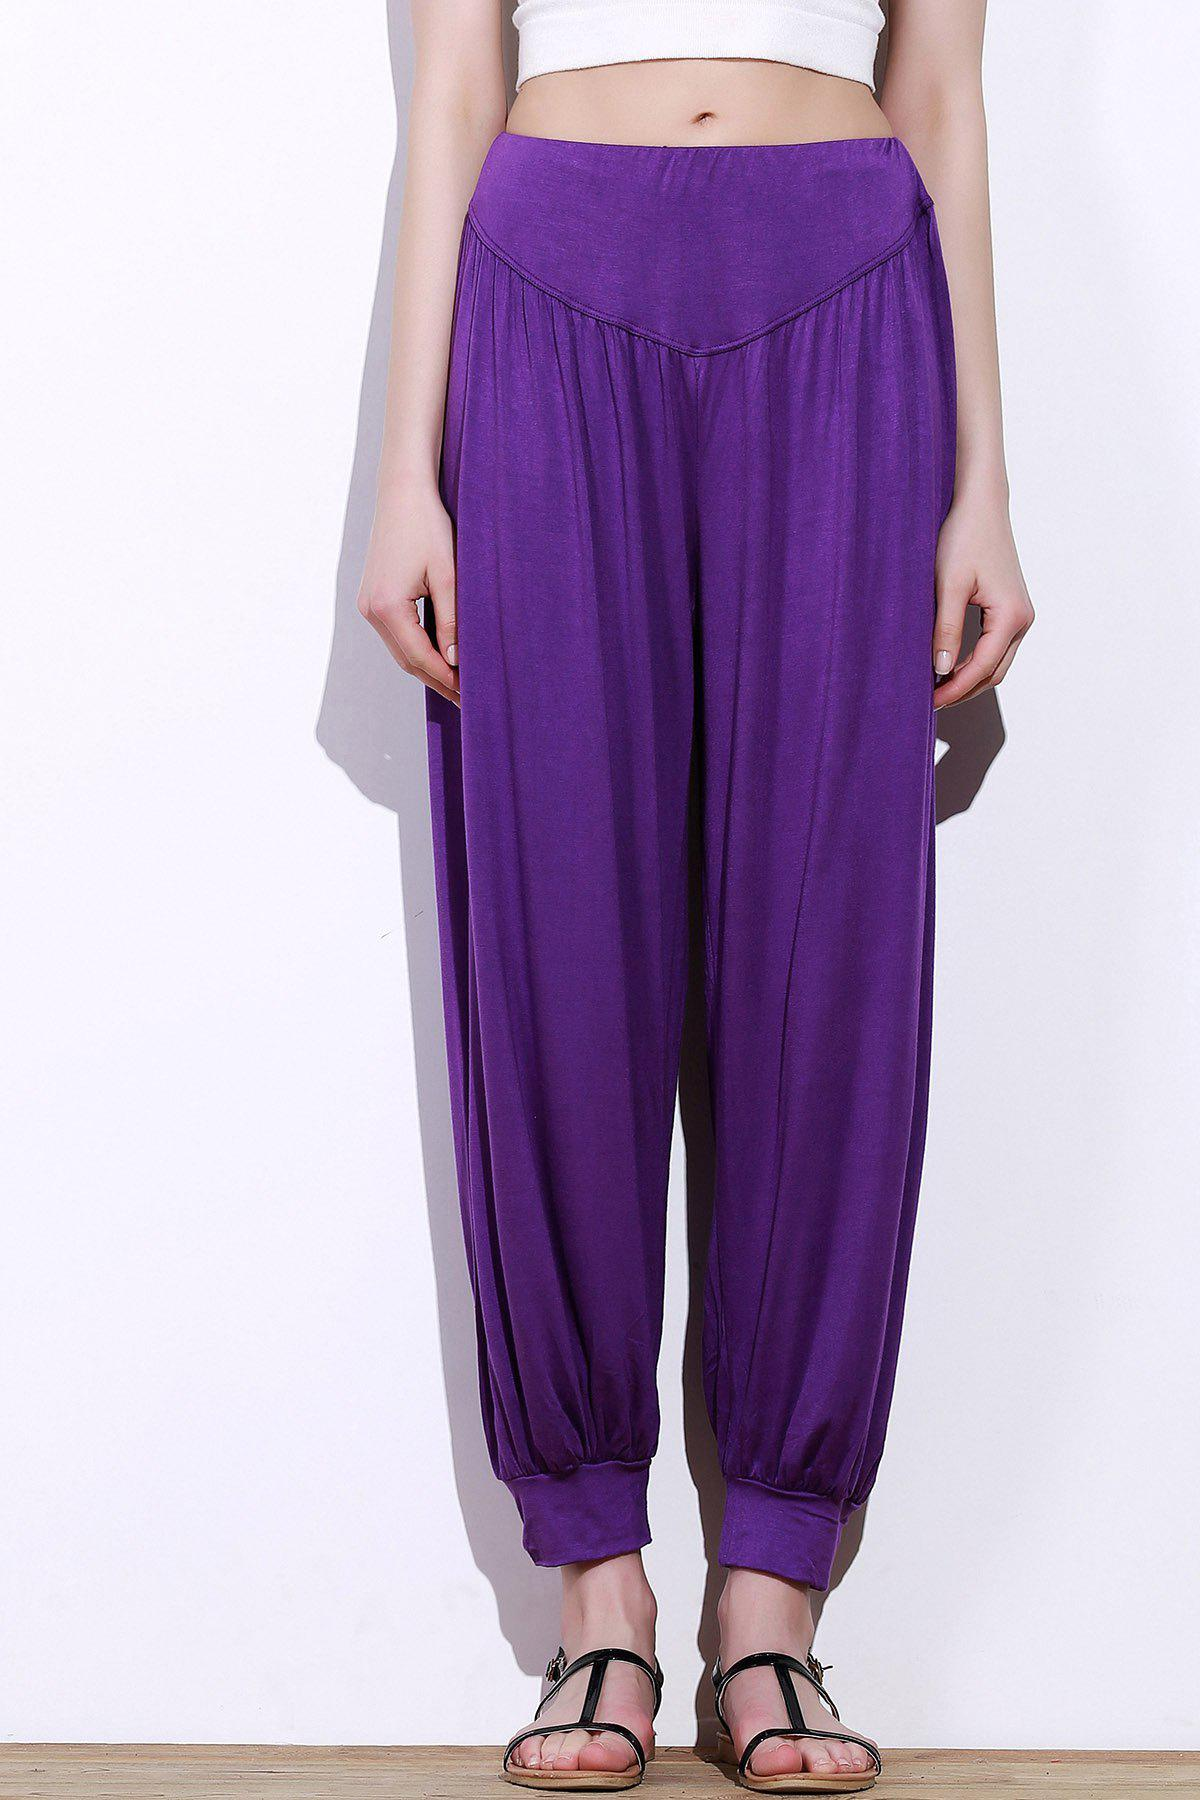 Stylish Elastic Waist Loose-Fitting Solid Color Women's Pants